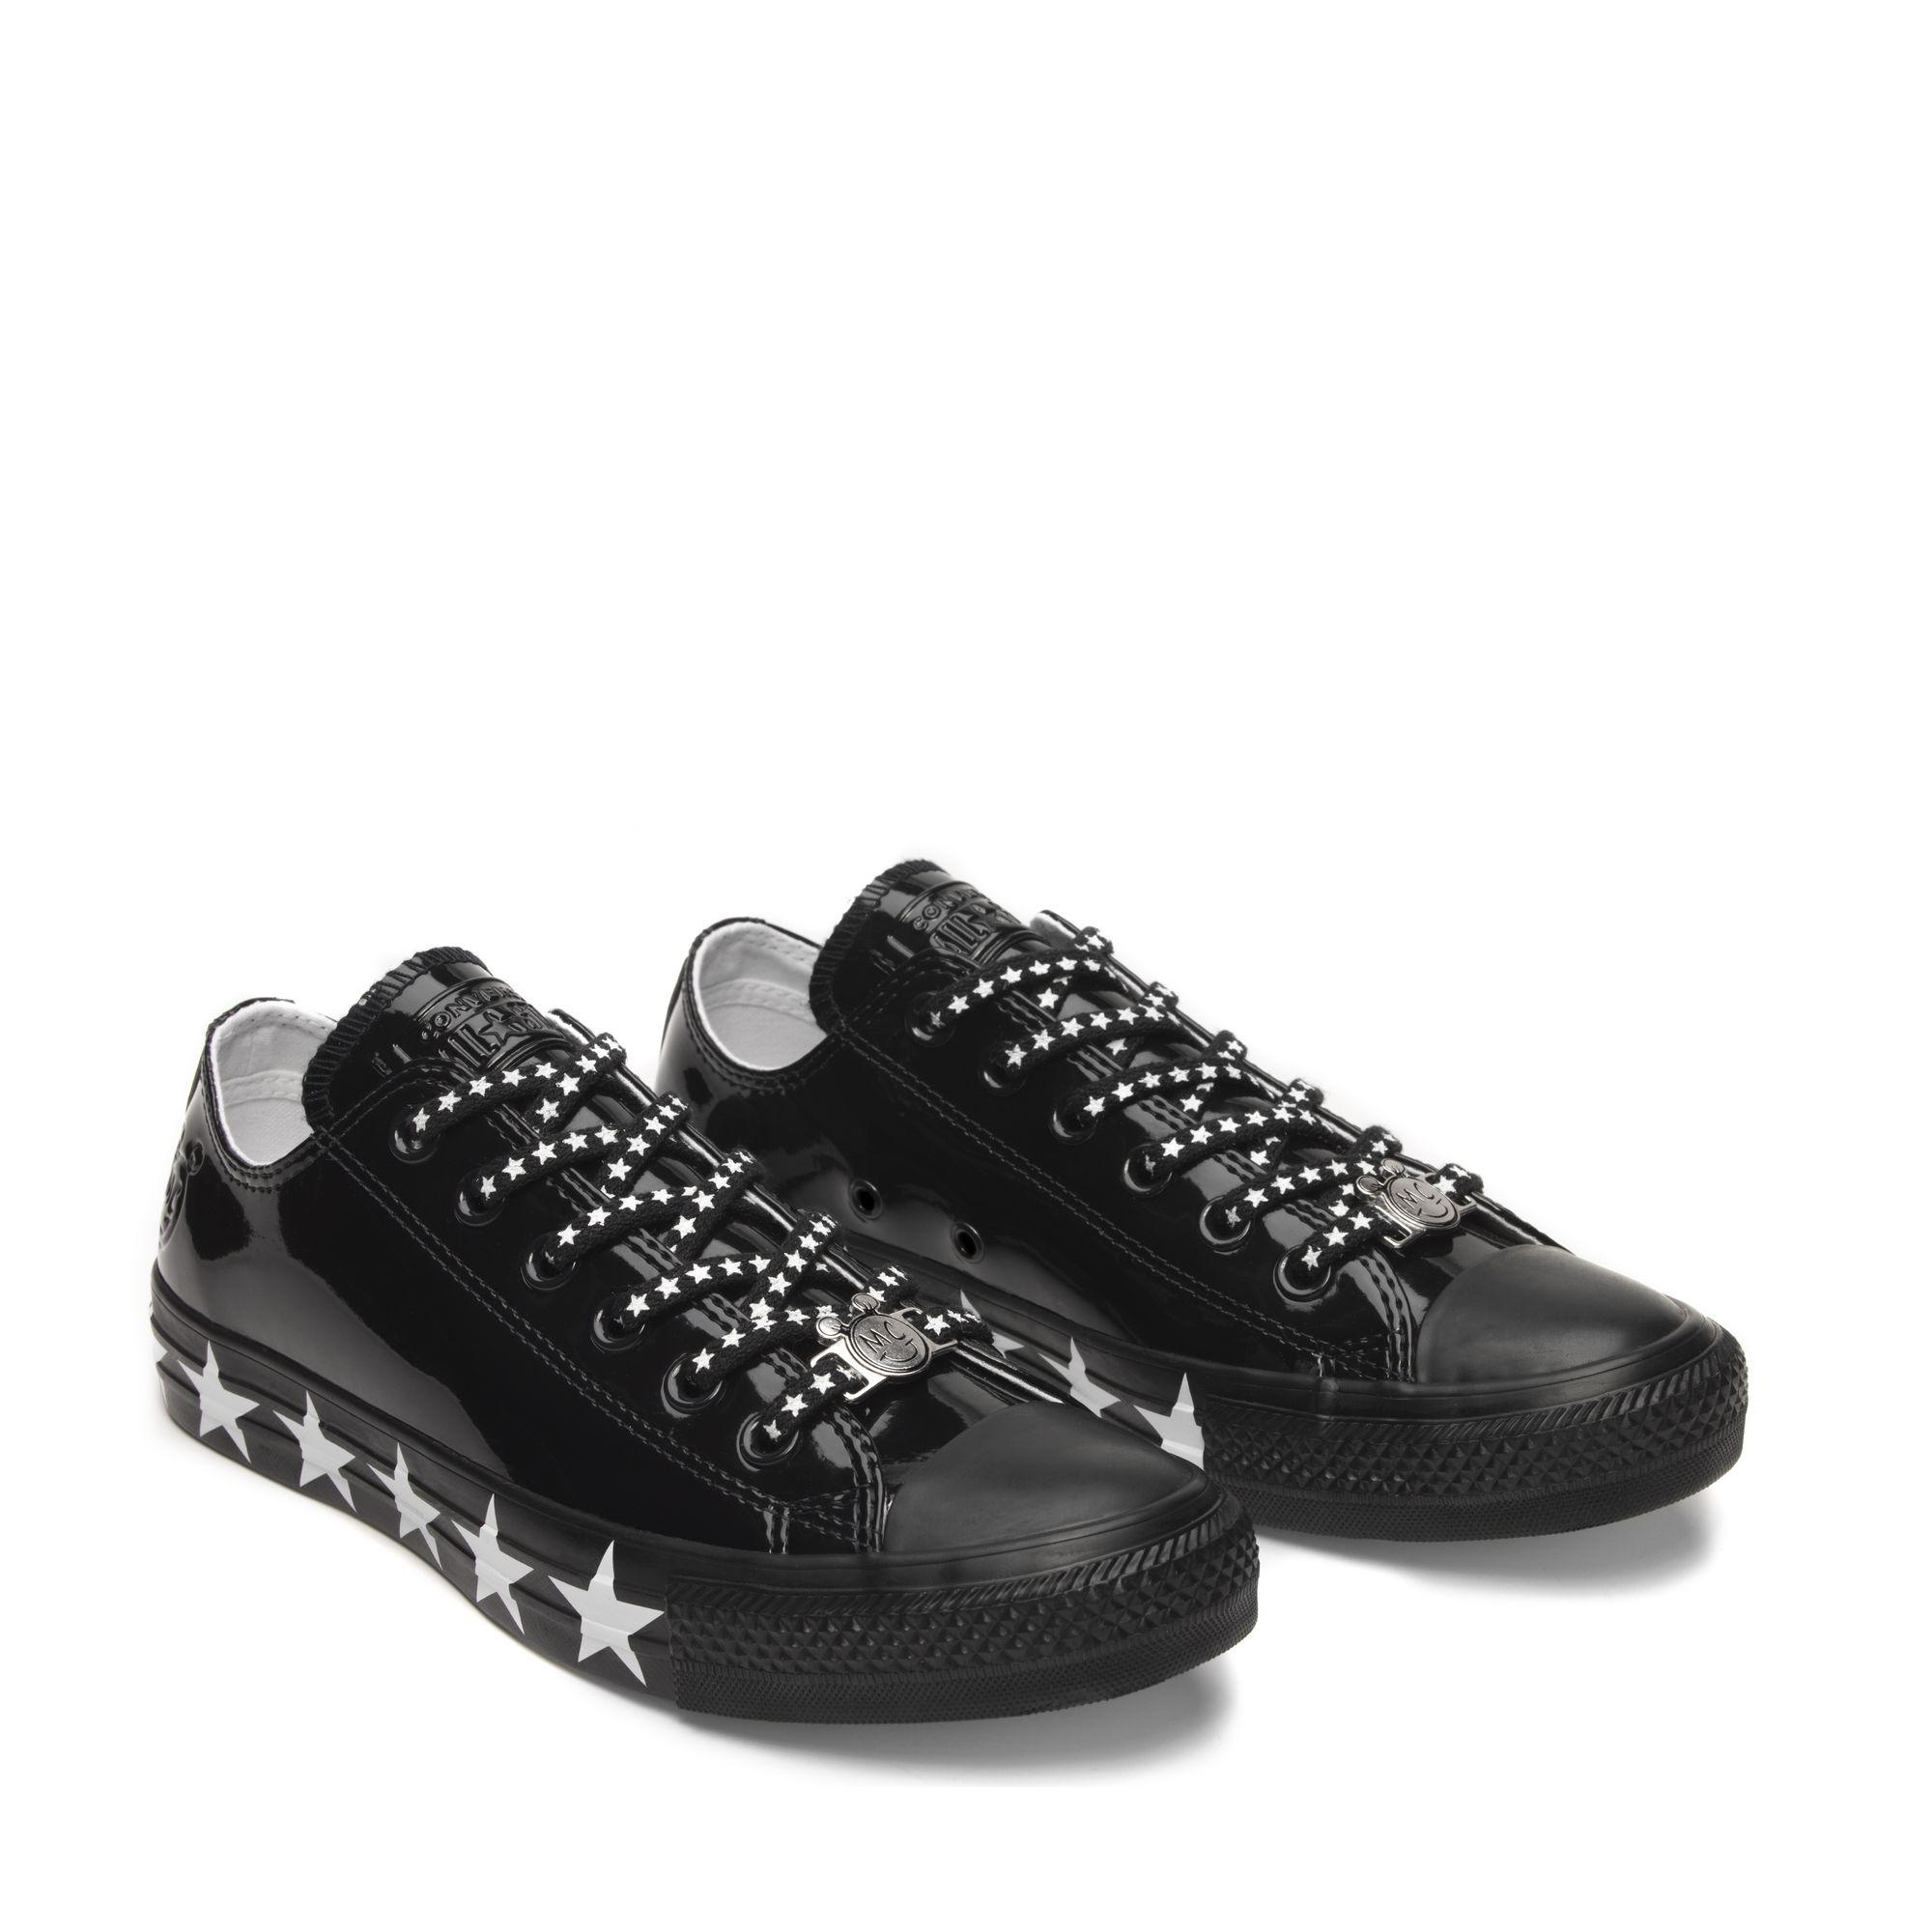 Jual Converse Chuck Taylor All Star Low Sneakers Unisex Chuck Size Source ·  CONVERSE X MILEY CYRUS CHUCK TAYLOR ALL STAR OX BLACK WHITE BLACK 1076a81025